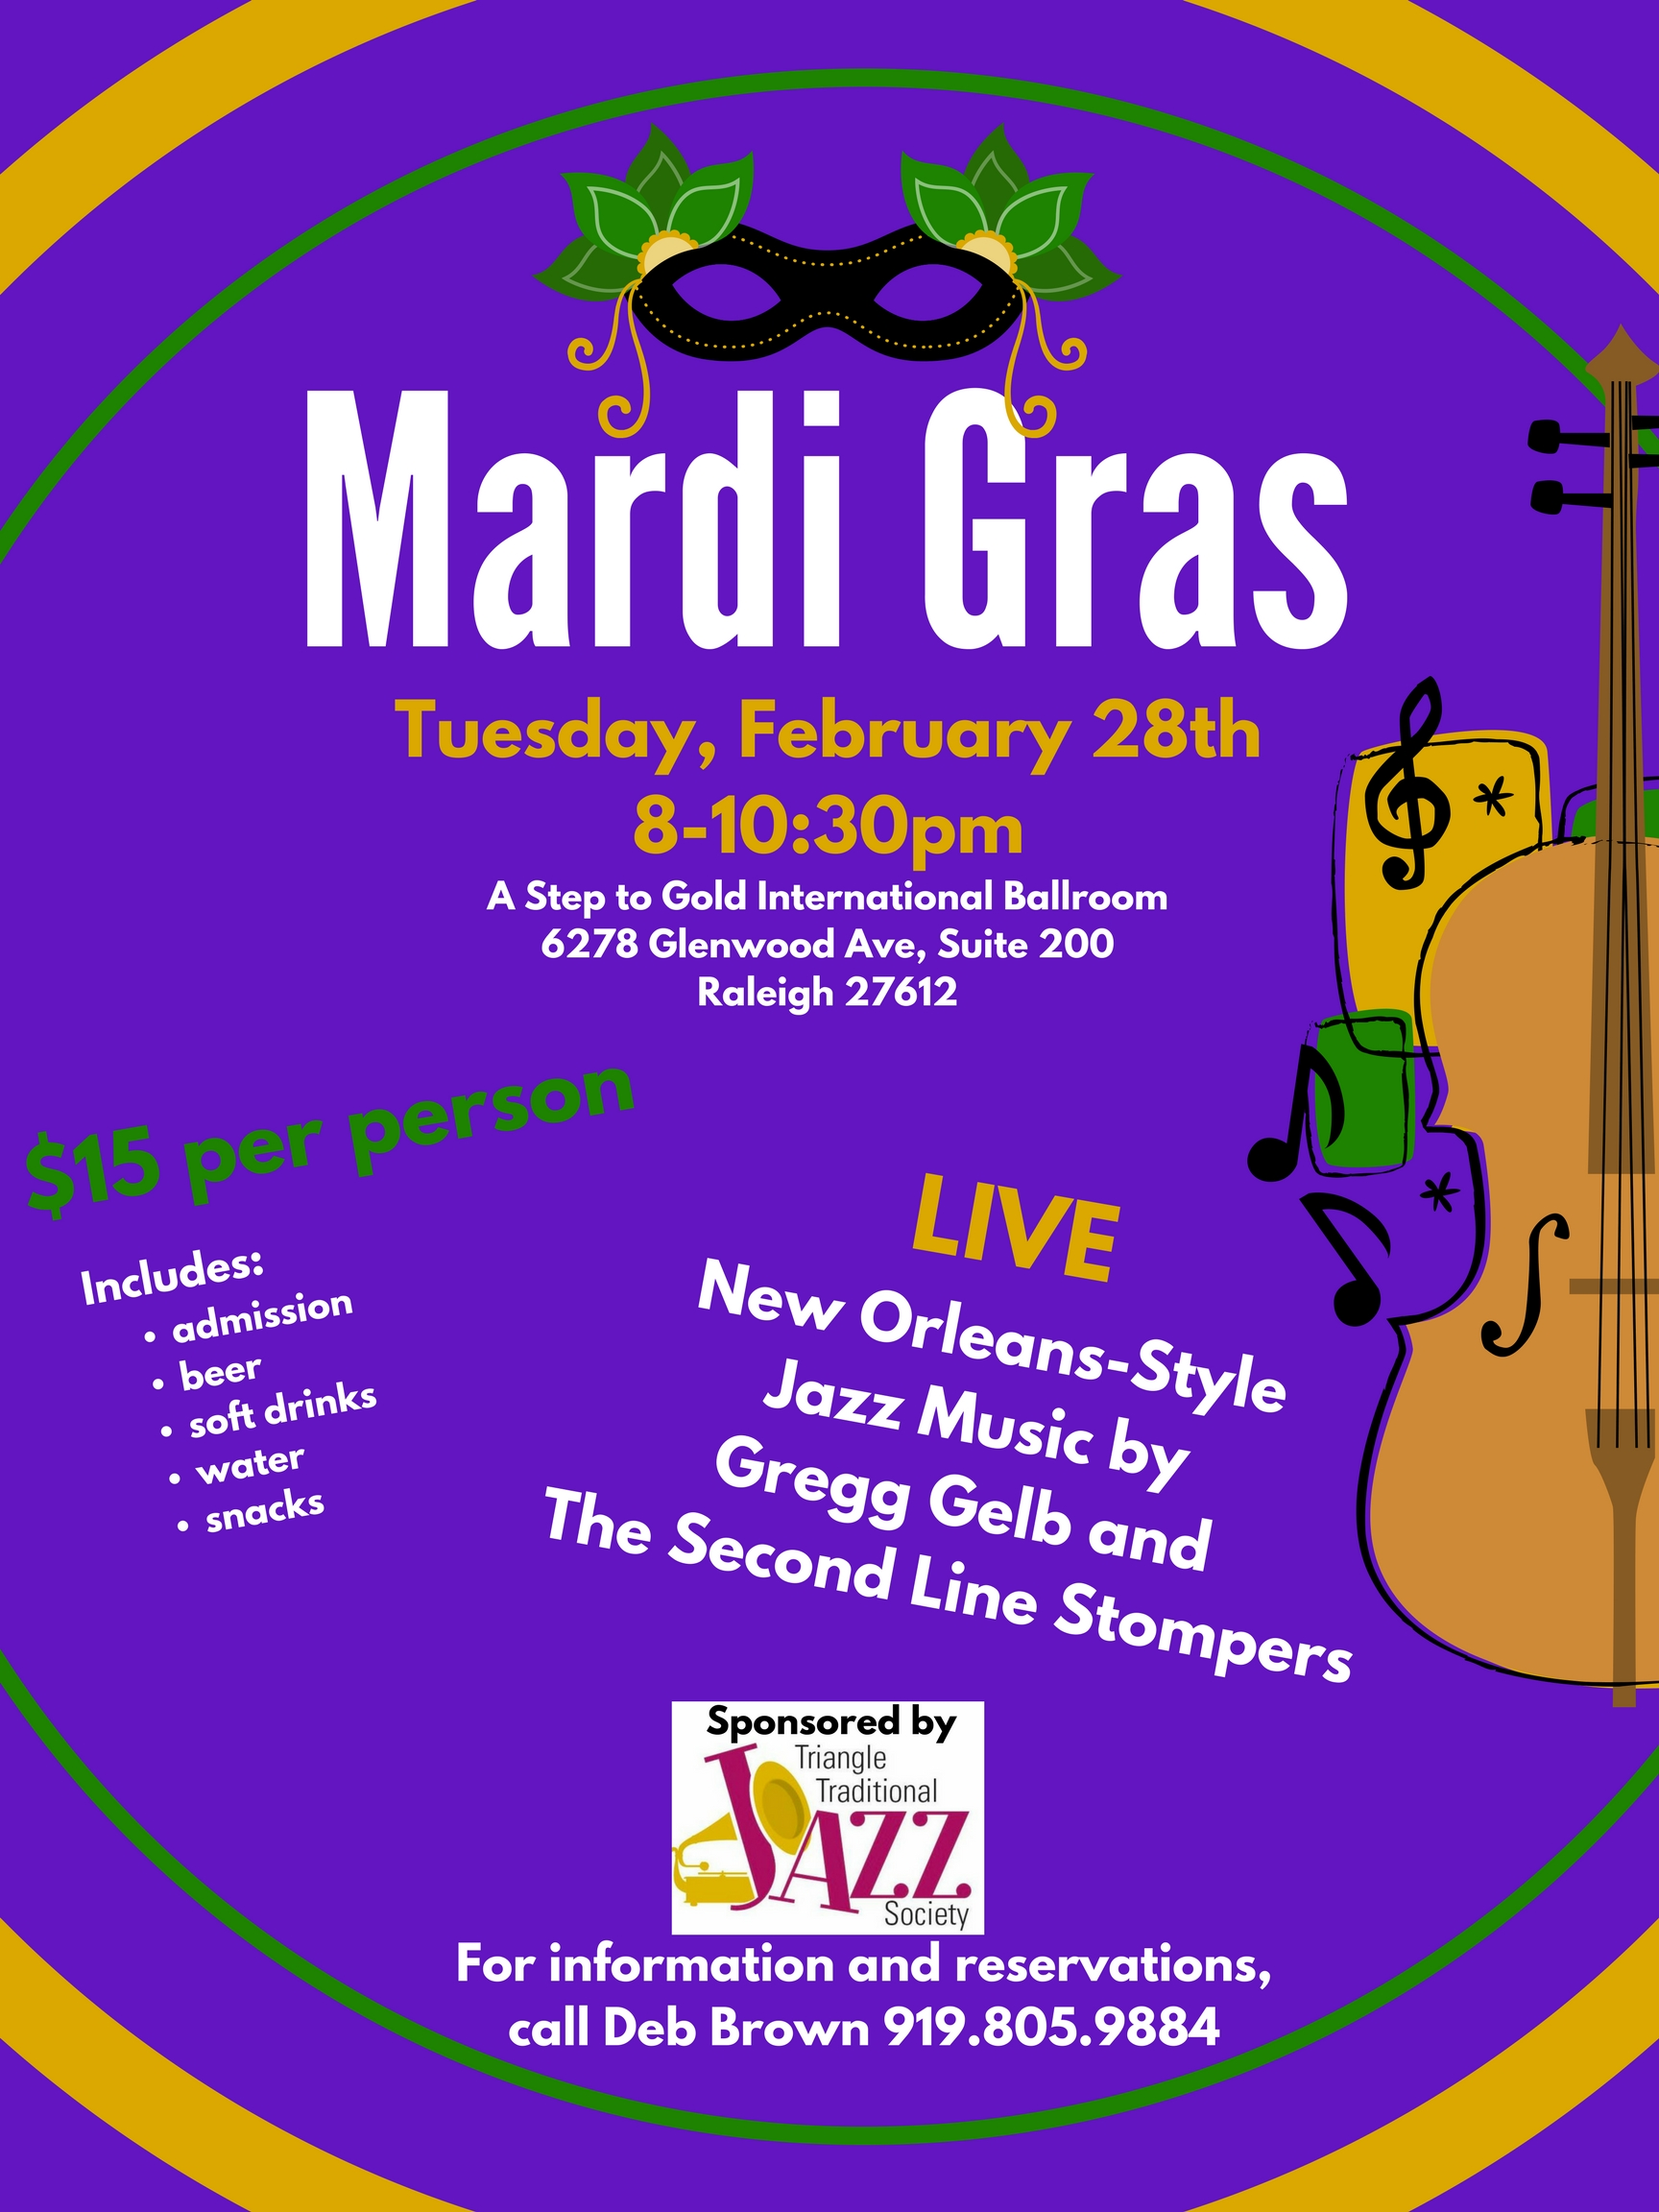 Join us for Mardi Gras!